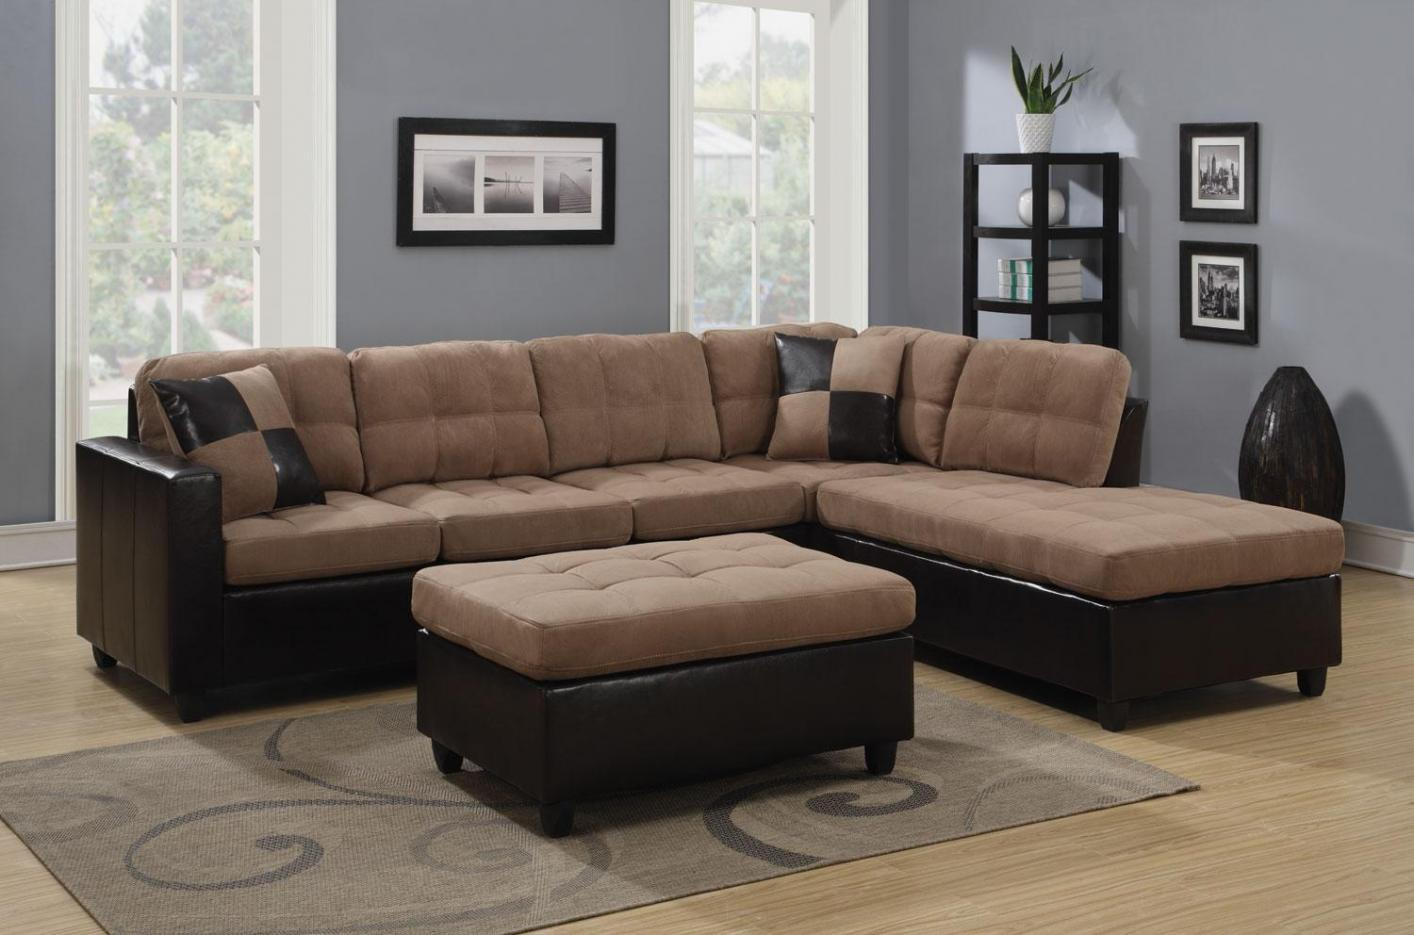 tan sofa couch set leather black light brands size top cheap sectional furniture ashley costco grain of reviews full best